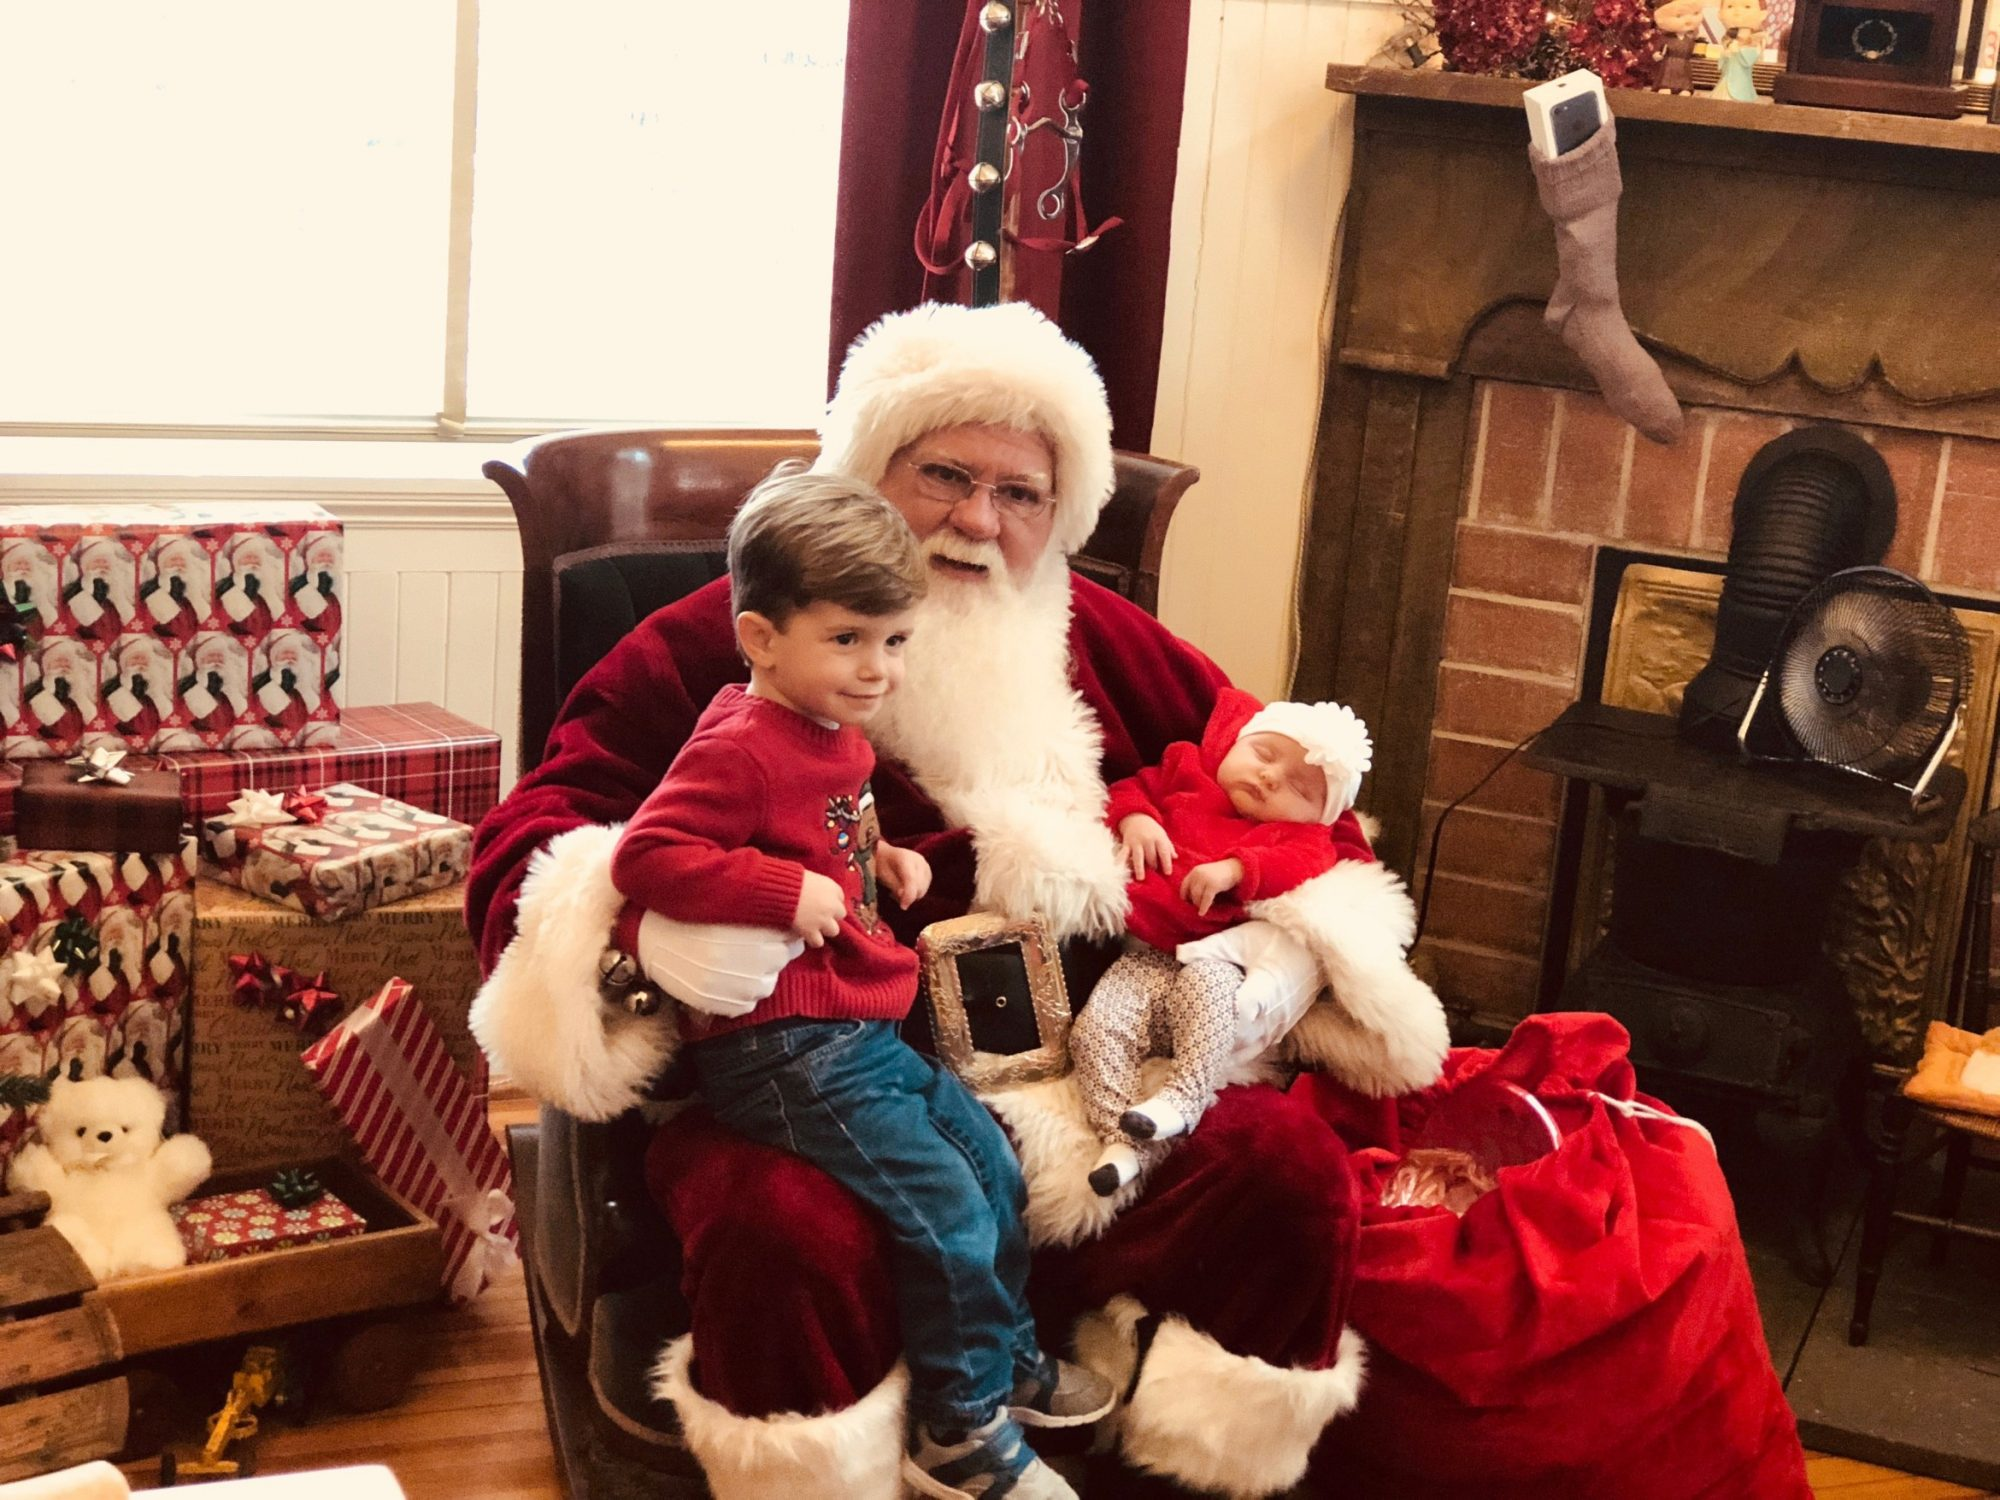 Santa Clause with a young boy in his lap.